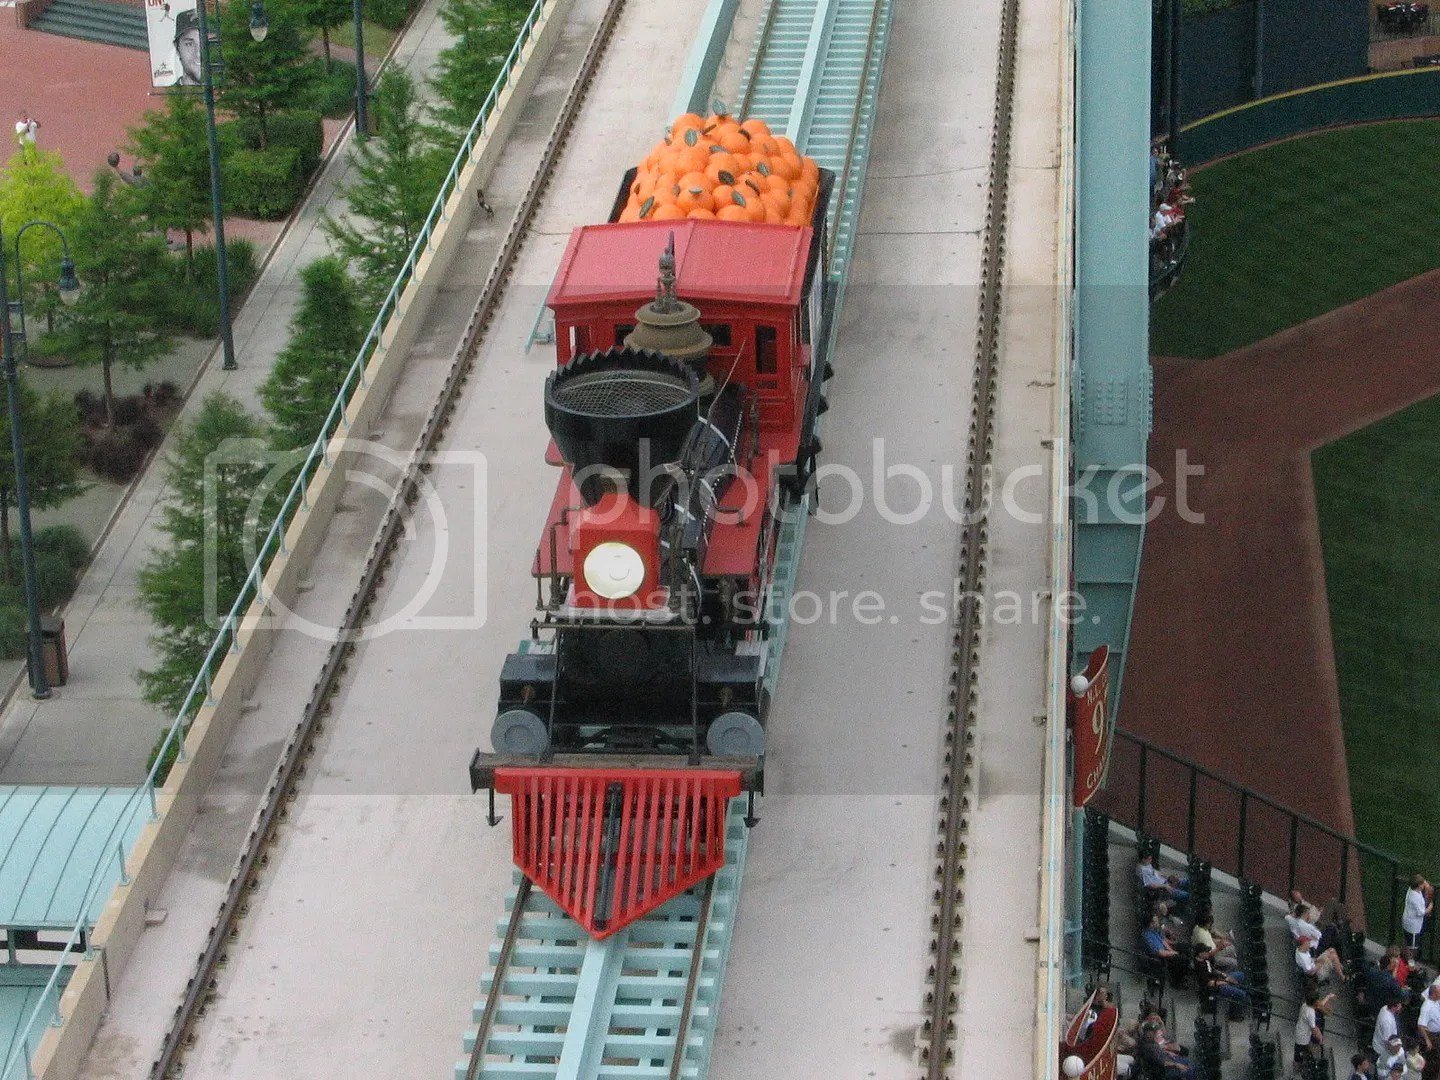 4dab.jpg THE FAMOUS LOCOMOTIVE picture by dreispics